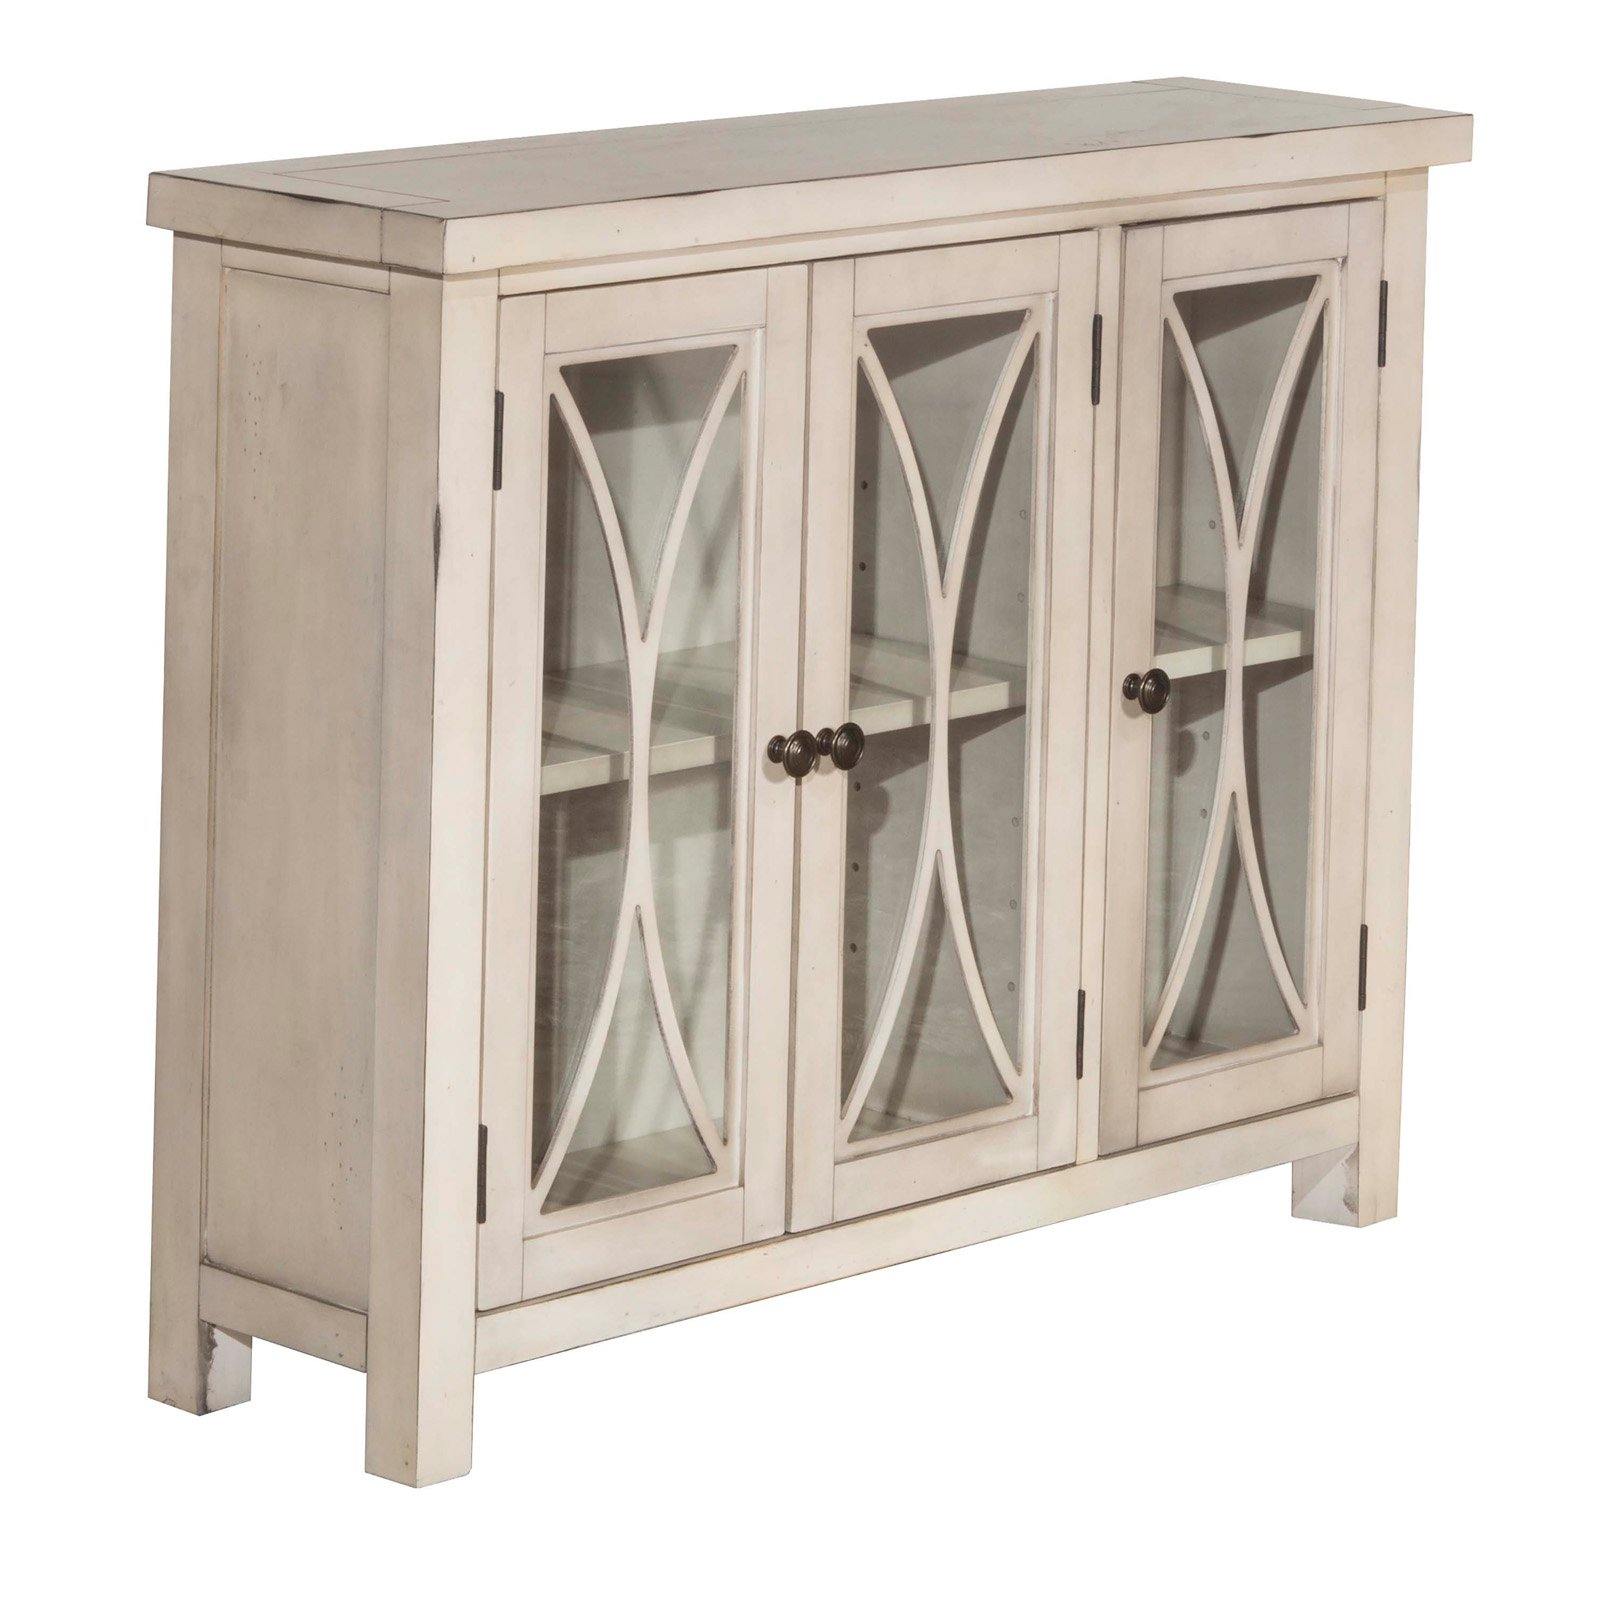 Hillsdale Furniture Bayside Three (3) Door Cabinet, Multiple Finishes